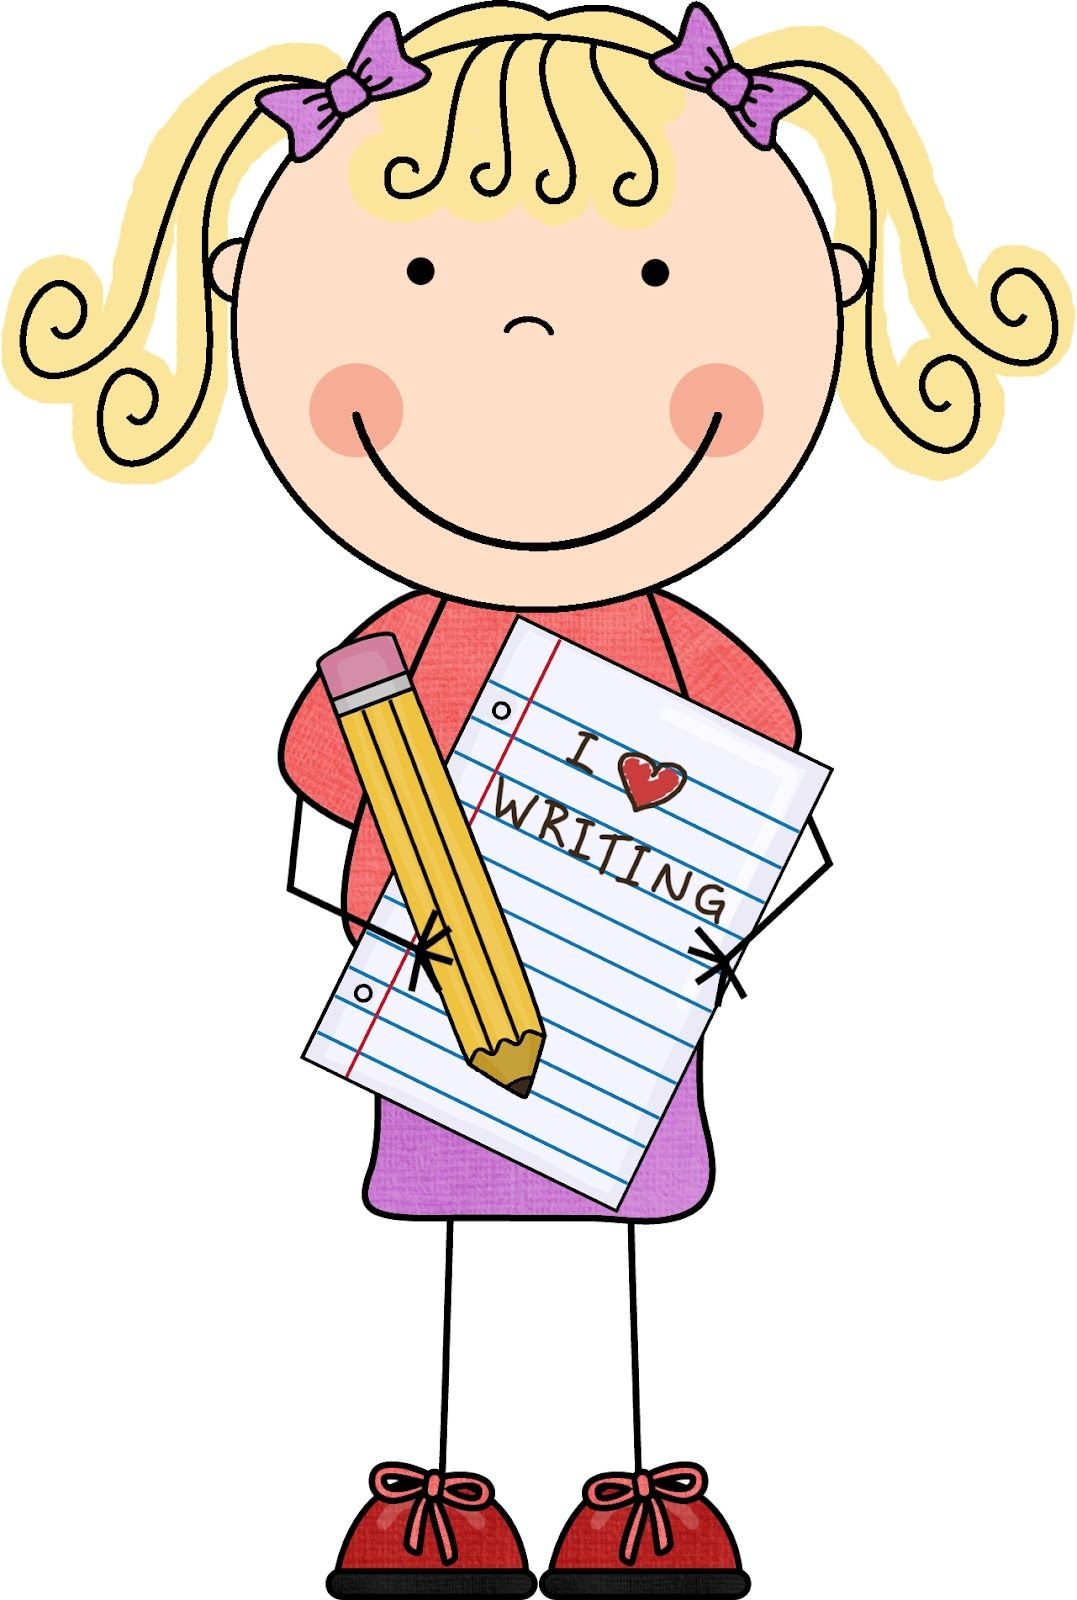 Busy bees tip guided. Clipart writing writing prompts